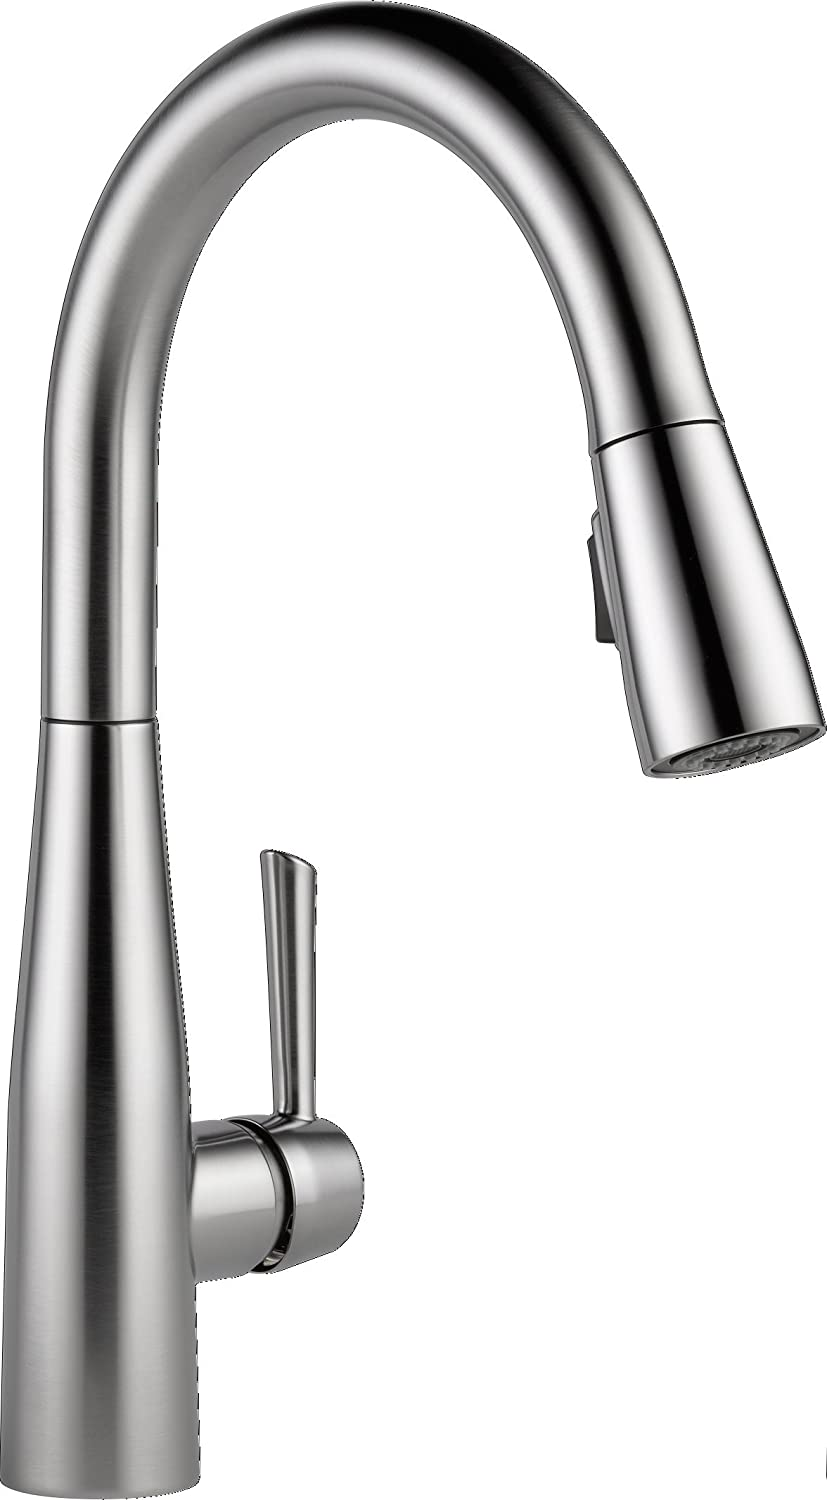 Kitchen Pull Out Faucet Delta Faucet 9113 Ar Dst Essa Single Handle Pull Down Kitchen